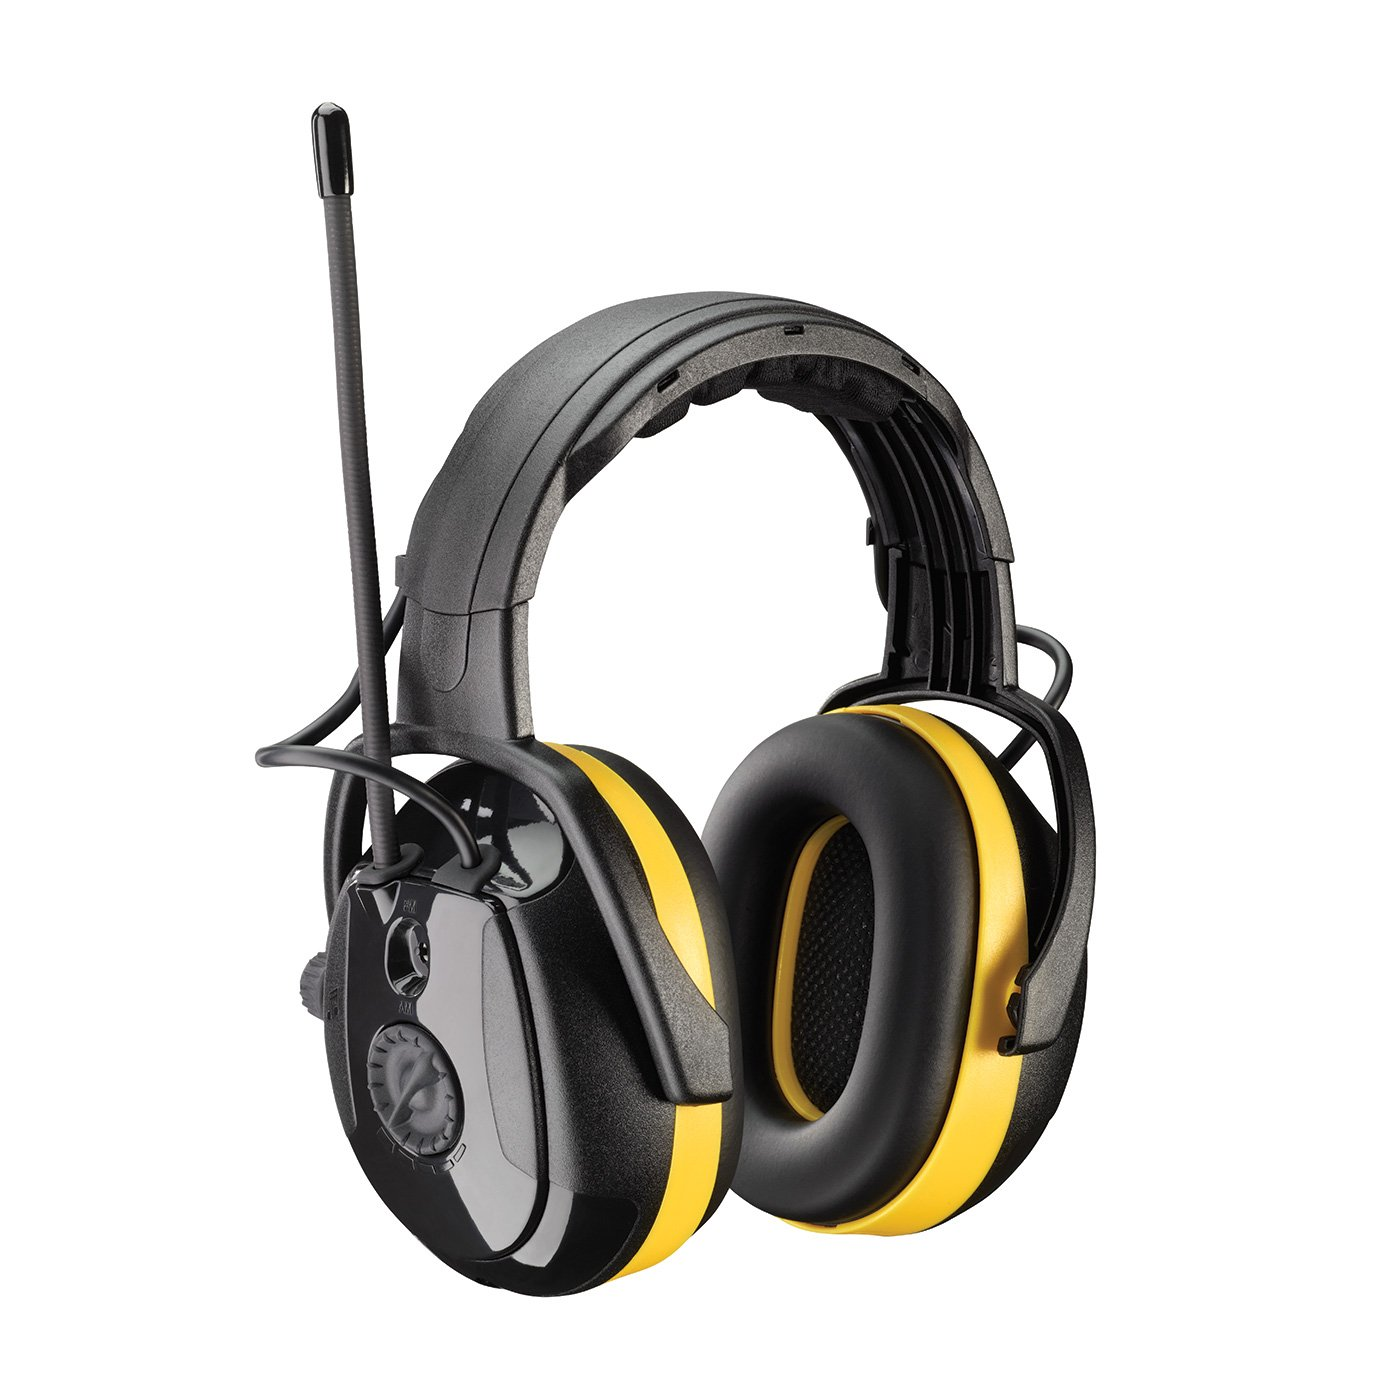 Relax 264-45002 NRR 24 Electronic Ear Muff with Headband Adjustment and AM/FM Radio, Large